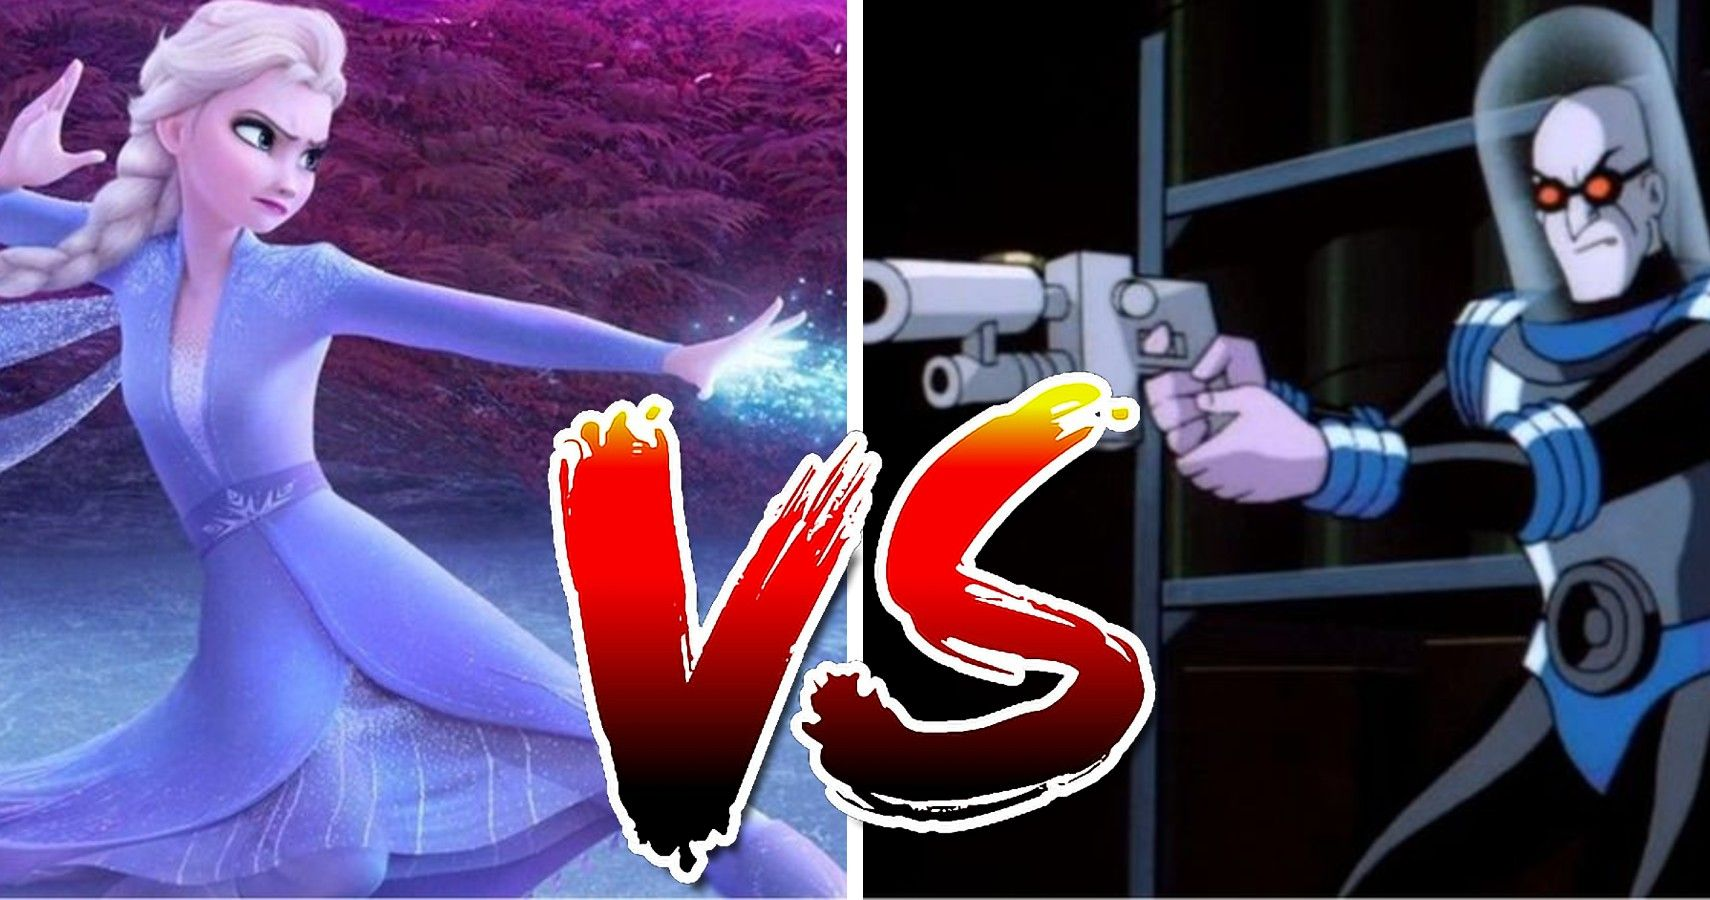 Elsa de Frozen vs Mr. Freeze